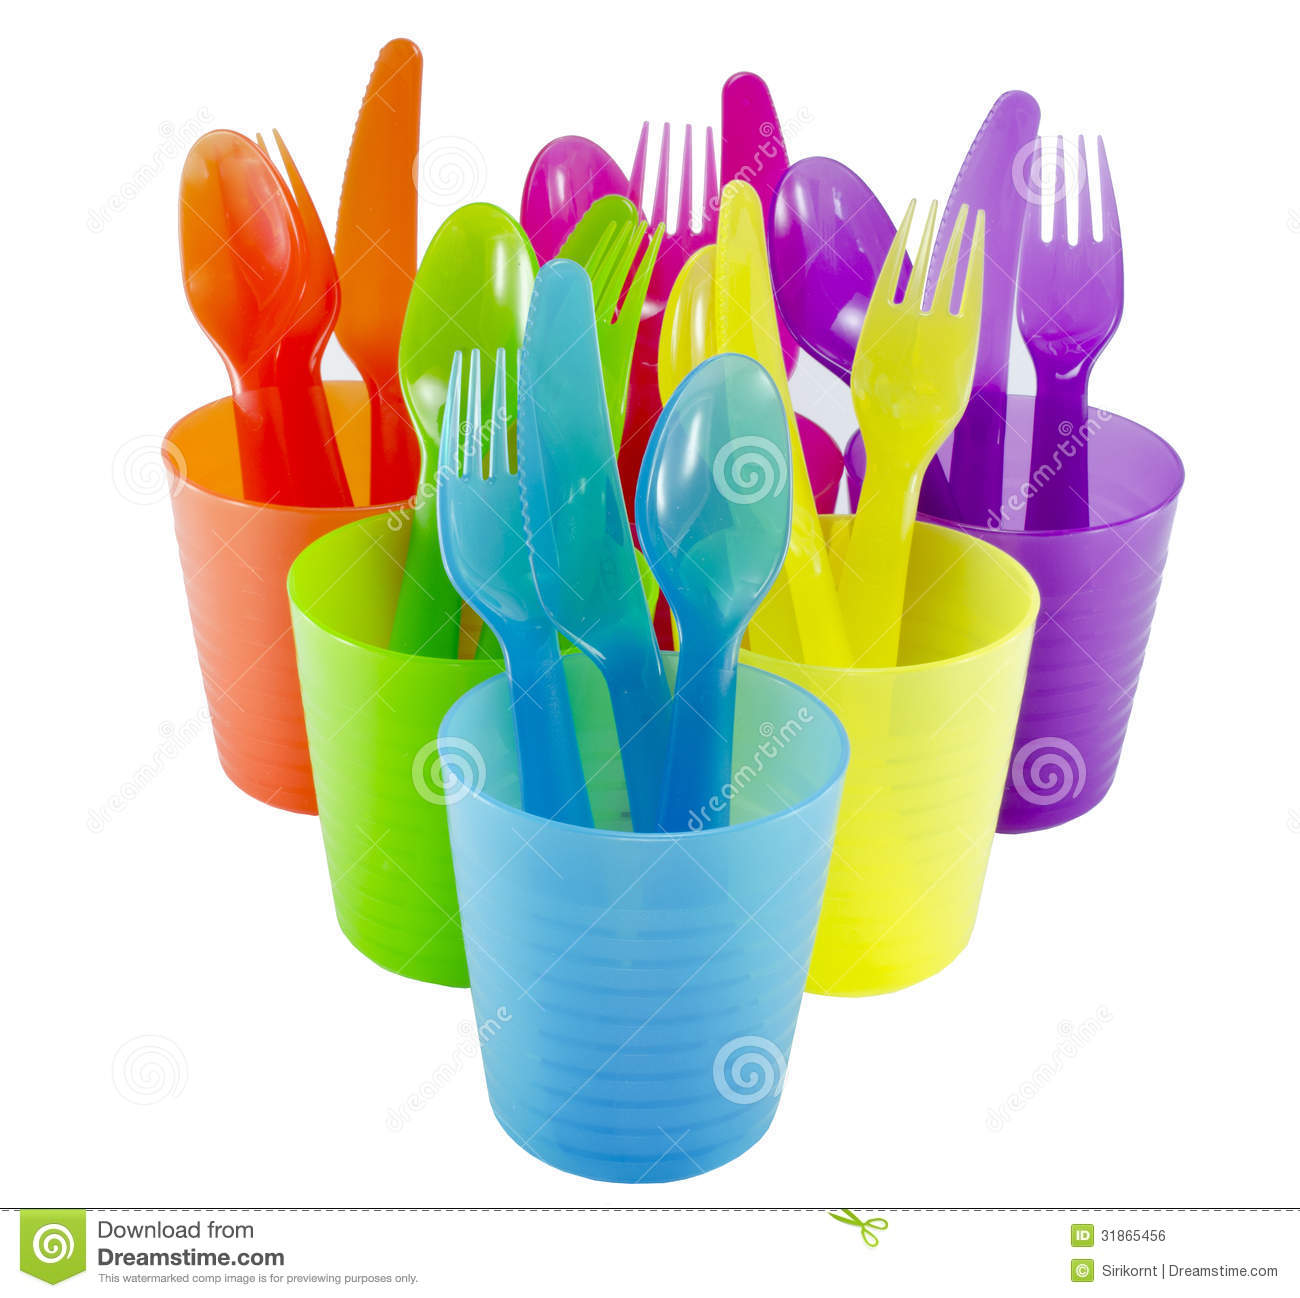 Spoon Fork Cup And Bowl Plastic Ware With White Isolate  : spoon fork cup bowl plastic ware white isolate backgrou 31865456 from www.dreamstime.com size 1300 x 1298 jpeg 133kB